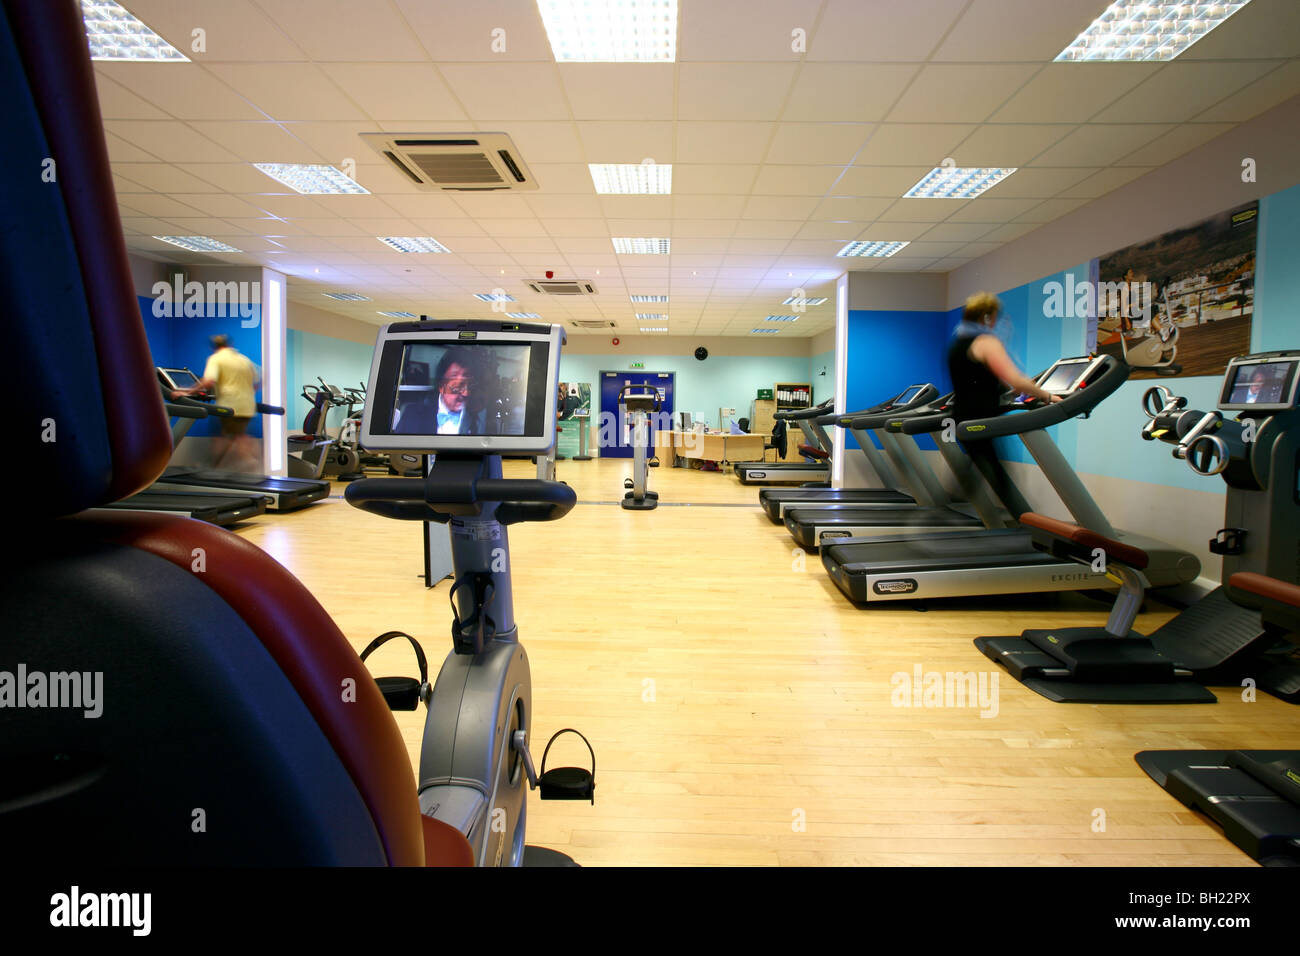 Modern Gym with various exercise equipment - Stock Image